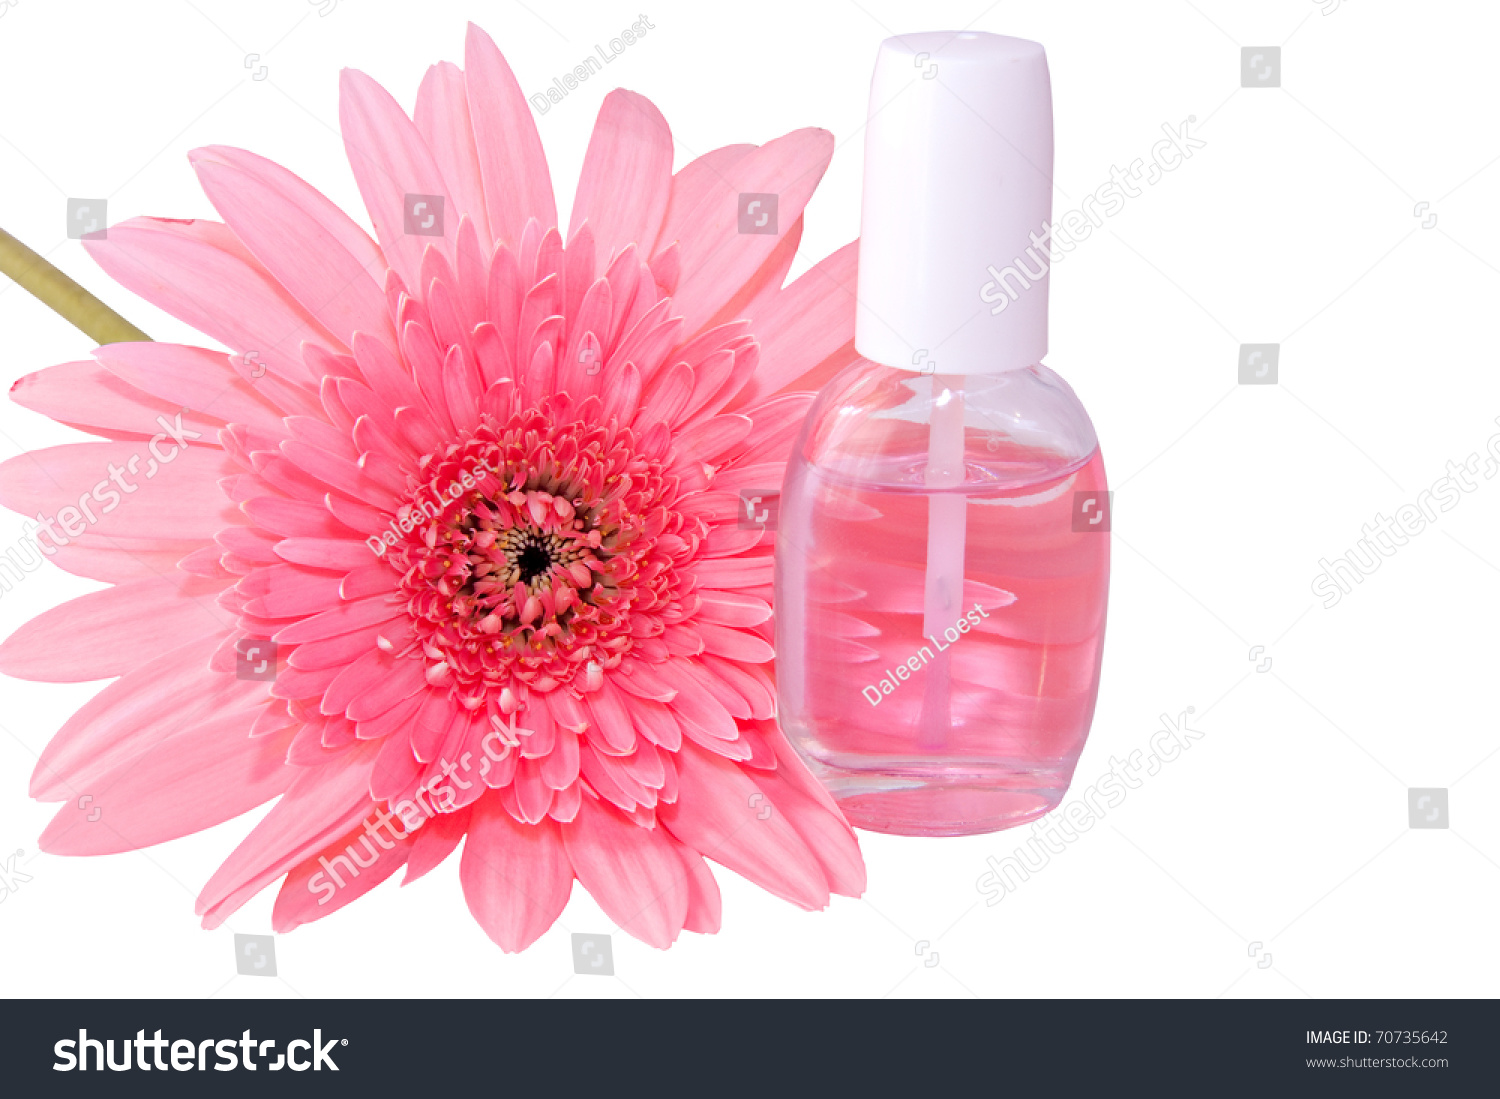 Nail Care Product Bottle Pink Gerbera Stock Photo Royalty Free